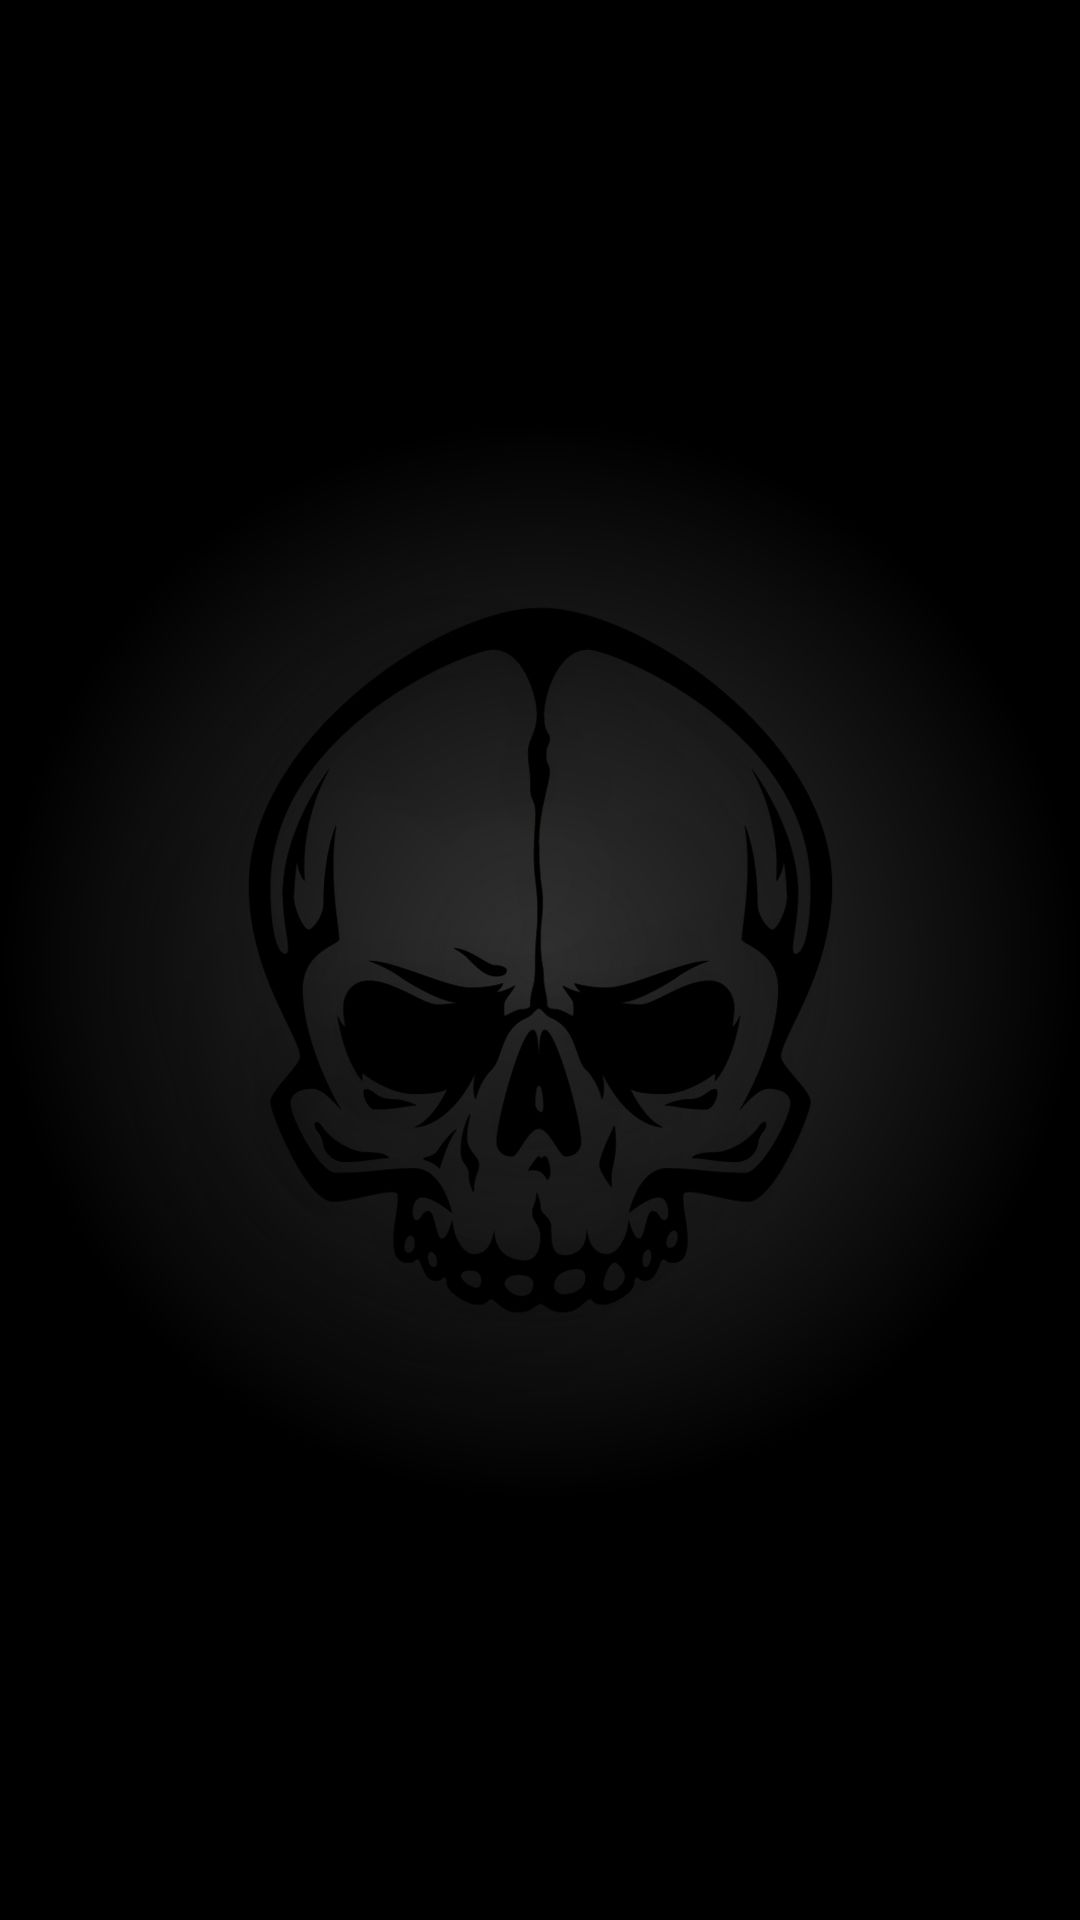 Skull Phone Wallpapers Top Free Skull Phone Backgrounds Wallpaperaccess